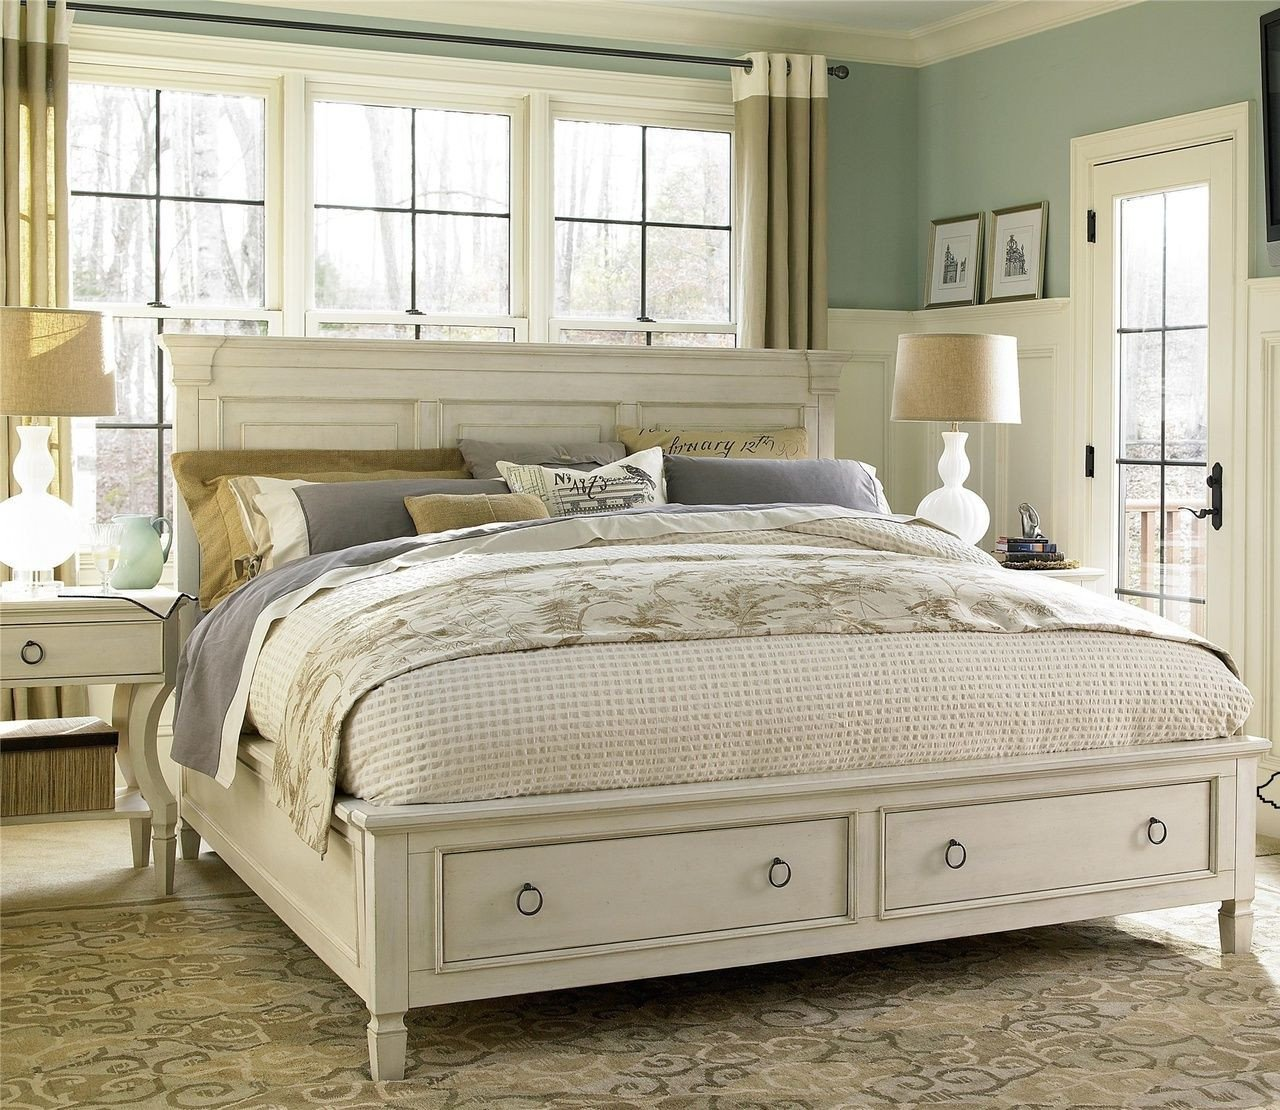 Small Bedroom King Bed Inspirational Country Chic Wood King Size White Storage Bed